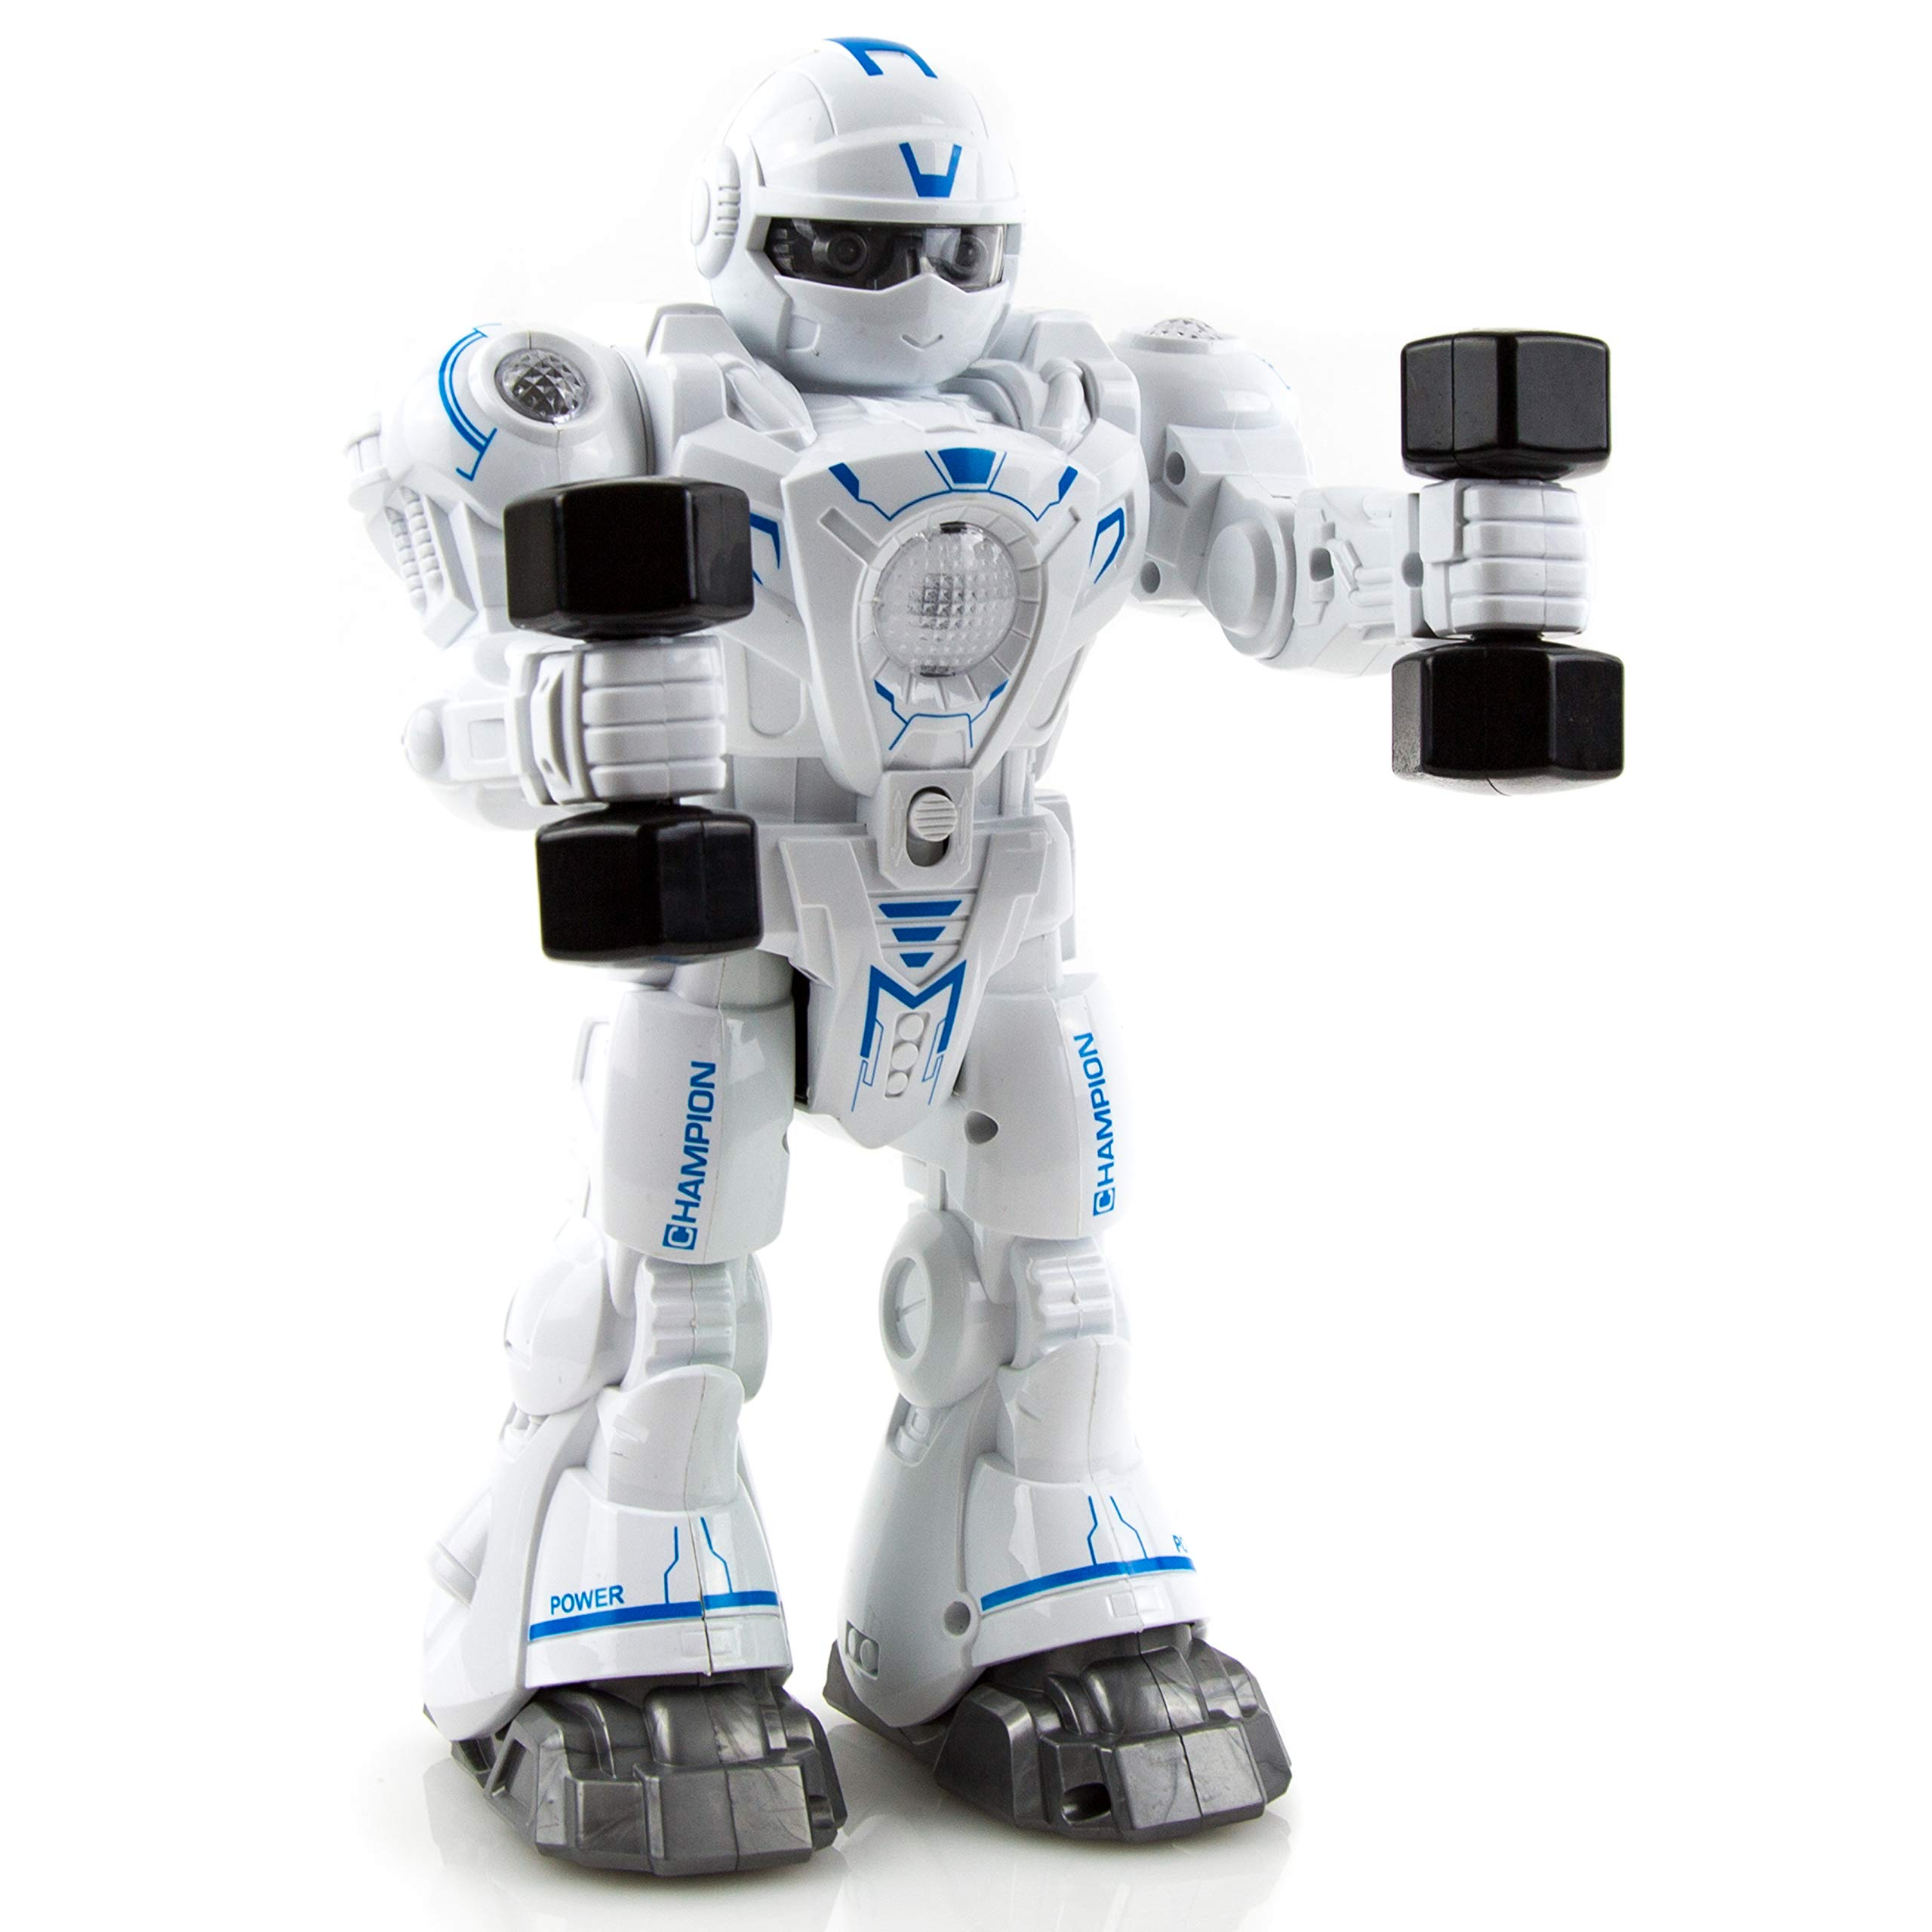 Toysery Walking Dancing Robot Toy Kids - Interactive Walking, Dancing Smart Robot Kit Boys & Girls (Battery Operated) by Toysery (Image #3)